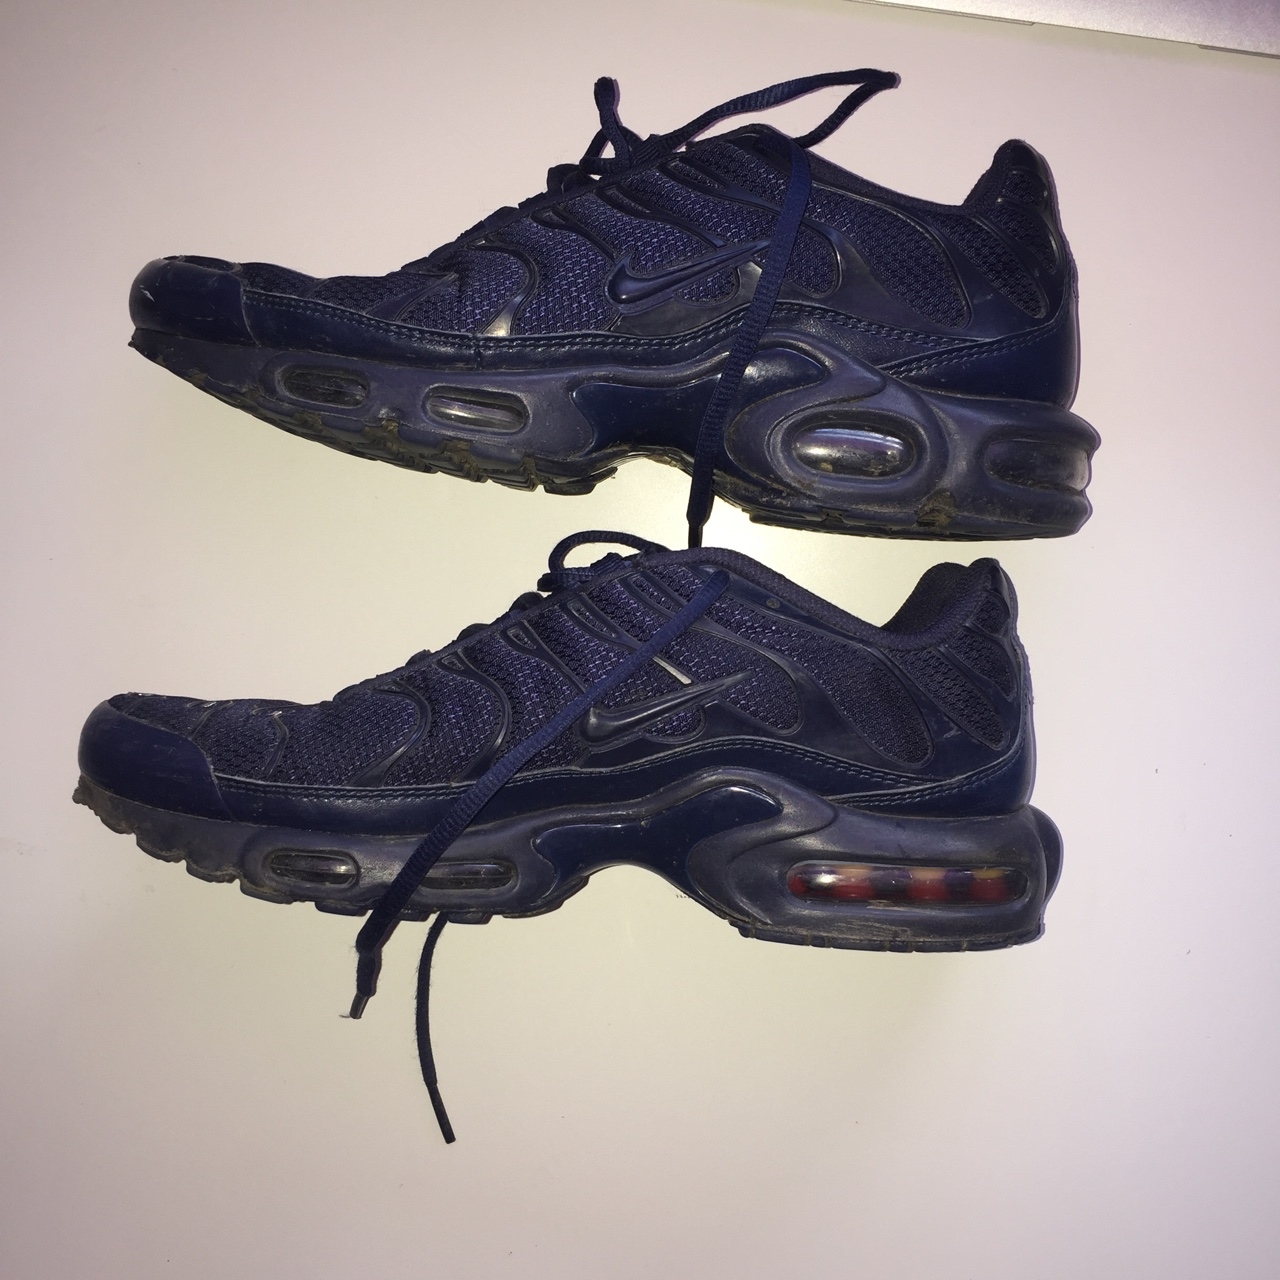 info for 7198e 57d5a Dark blue Nike tn Worn a few times but great... - Depop